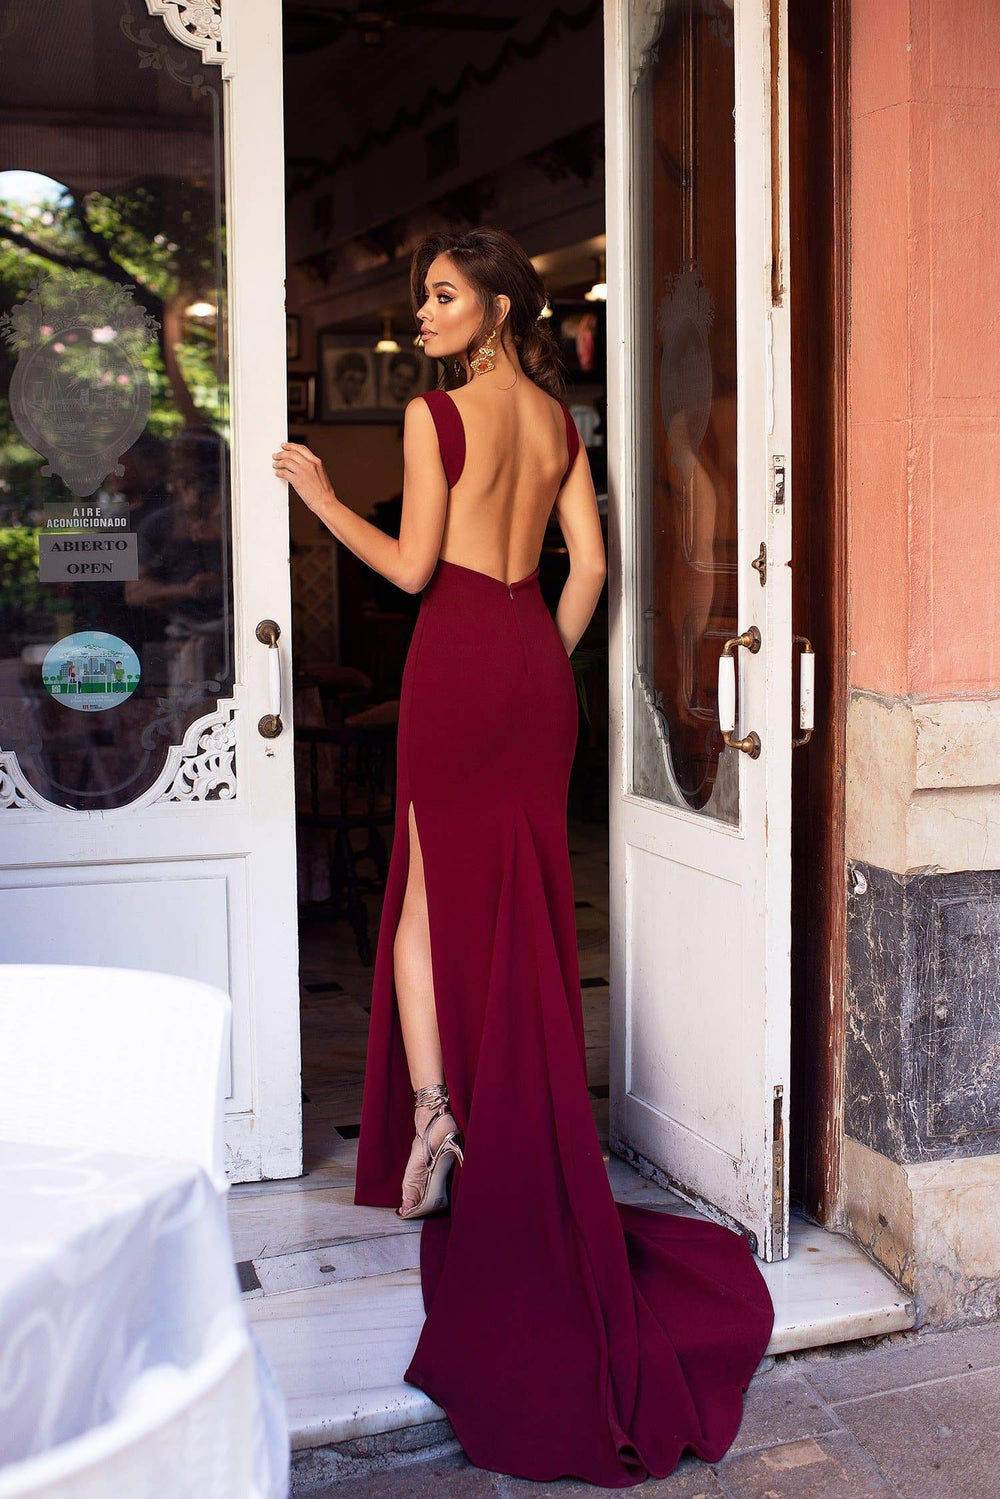 Reina - Burgundy Mermaid Gown with Plunge Neckline & Low Back